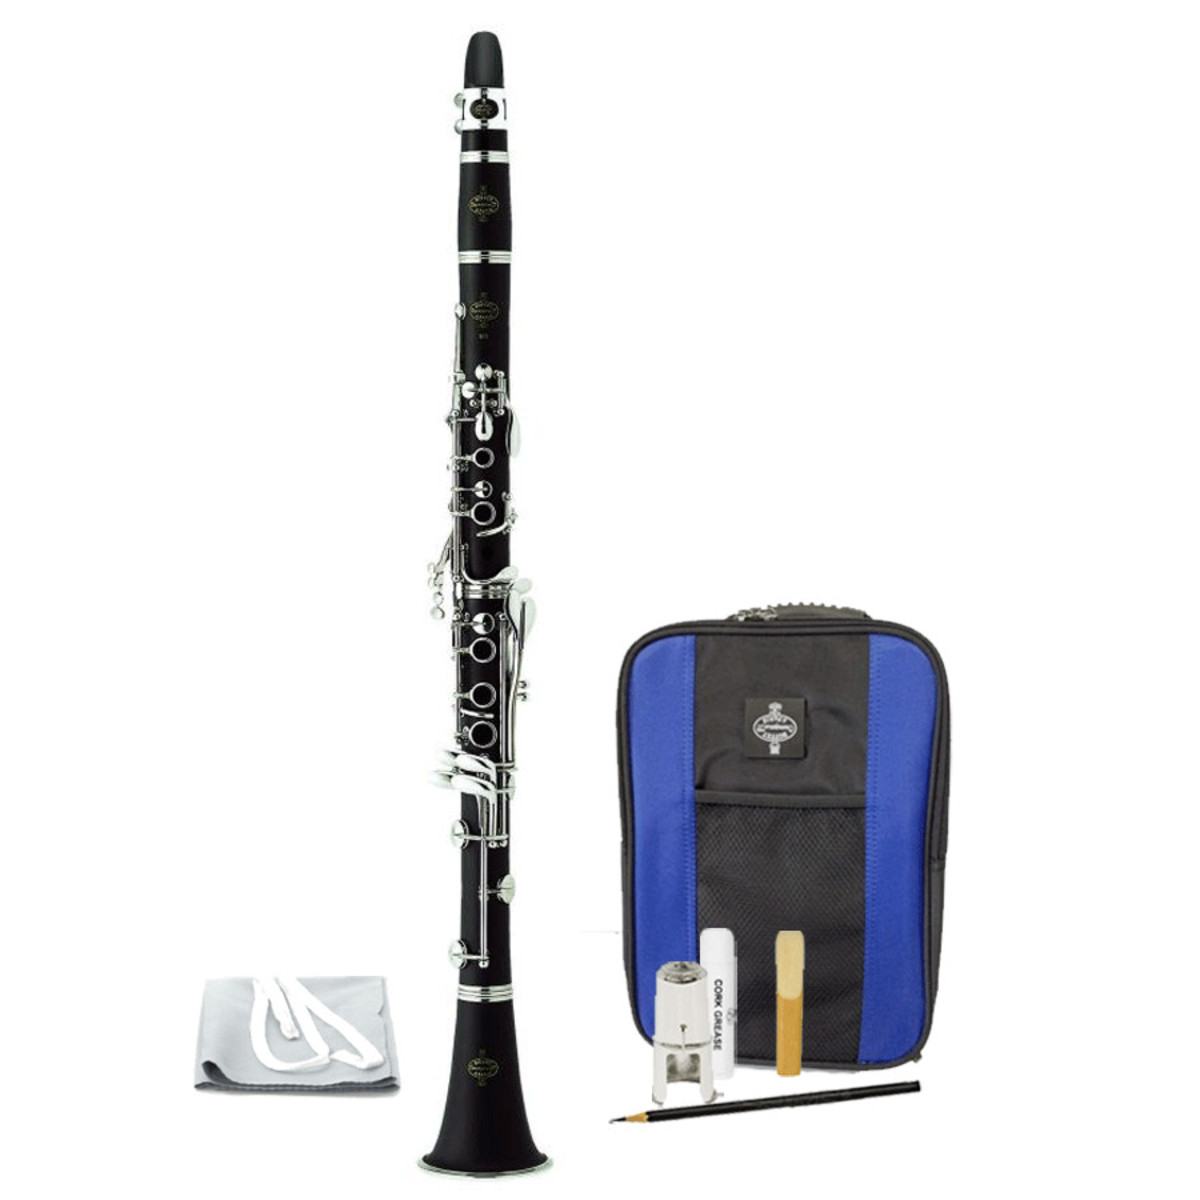 buffet b12 bb student clarinet outfit at gear4music rh gear4music com buffet b12 clarinet review buffet b12 clarinet used